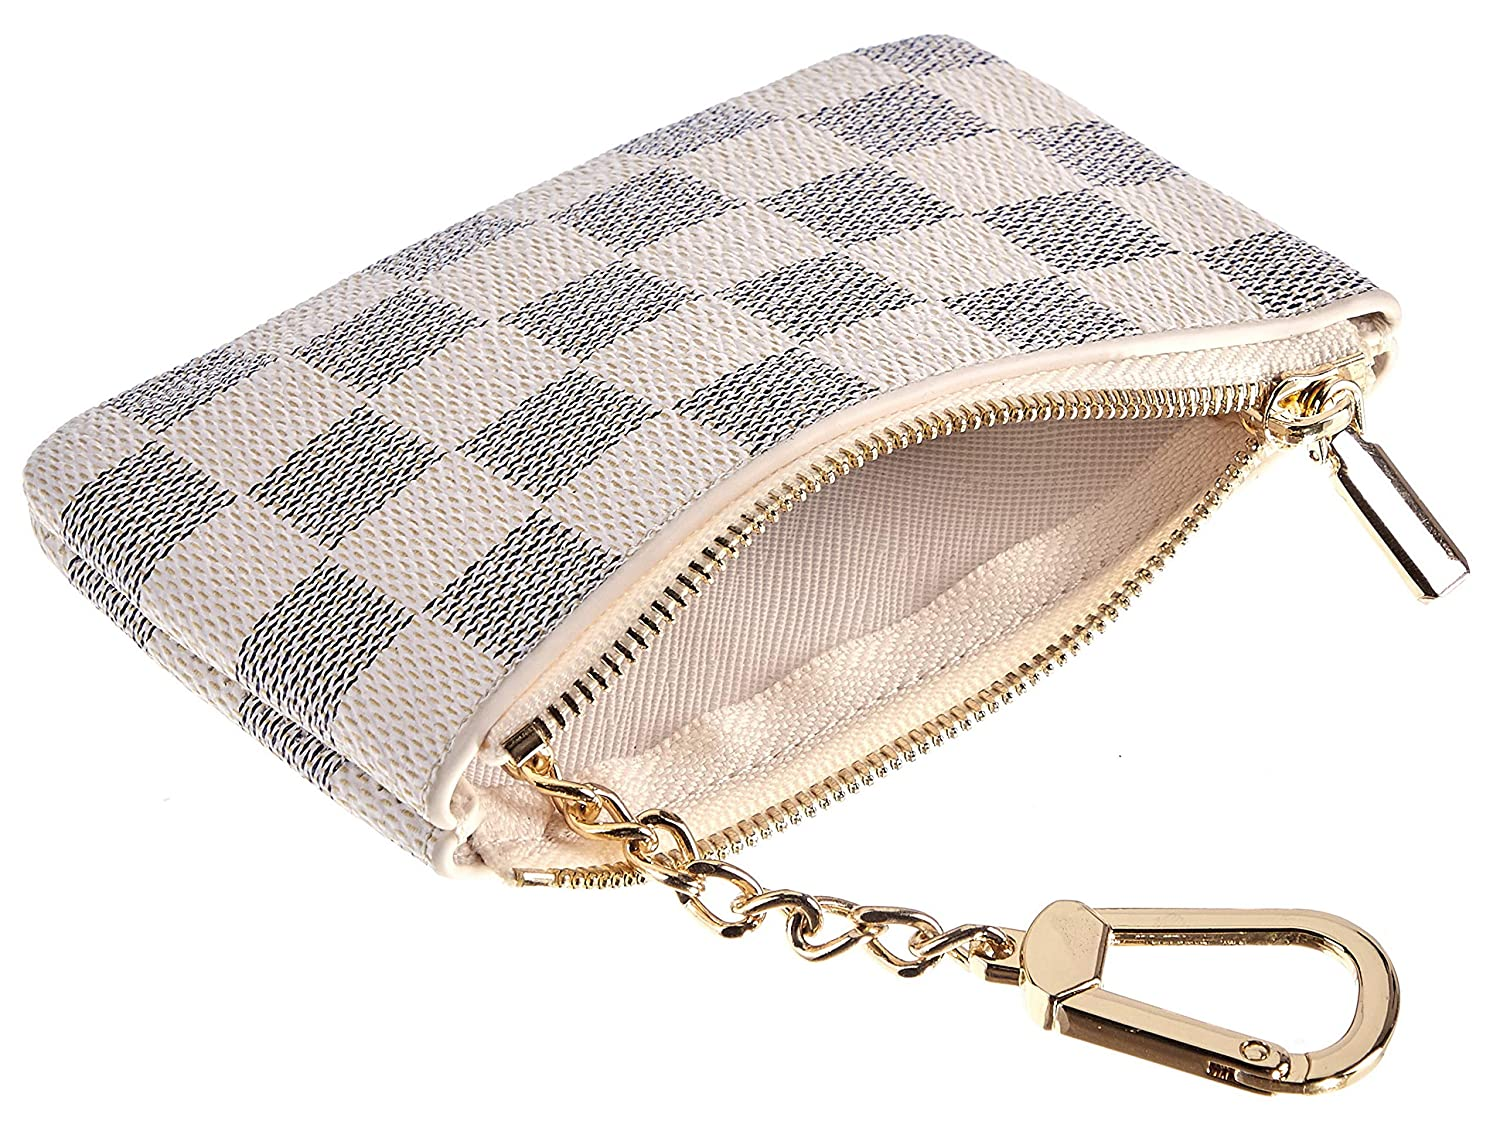 01 Victoria Rita Messi Luxury Checkered Zip Coin Pouch Purse Change Holder Wallet with Key Chain 2 pcs Set